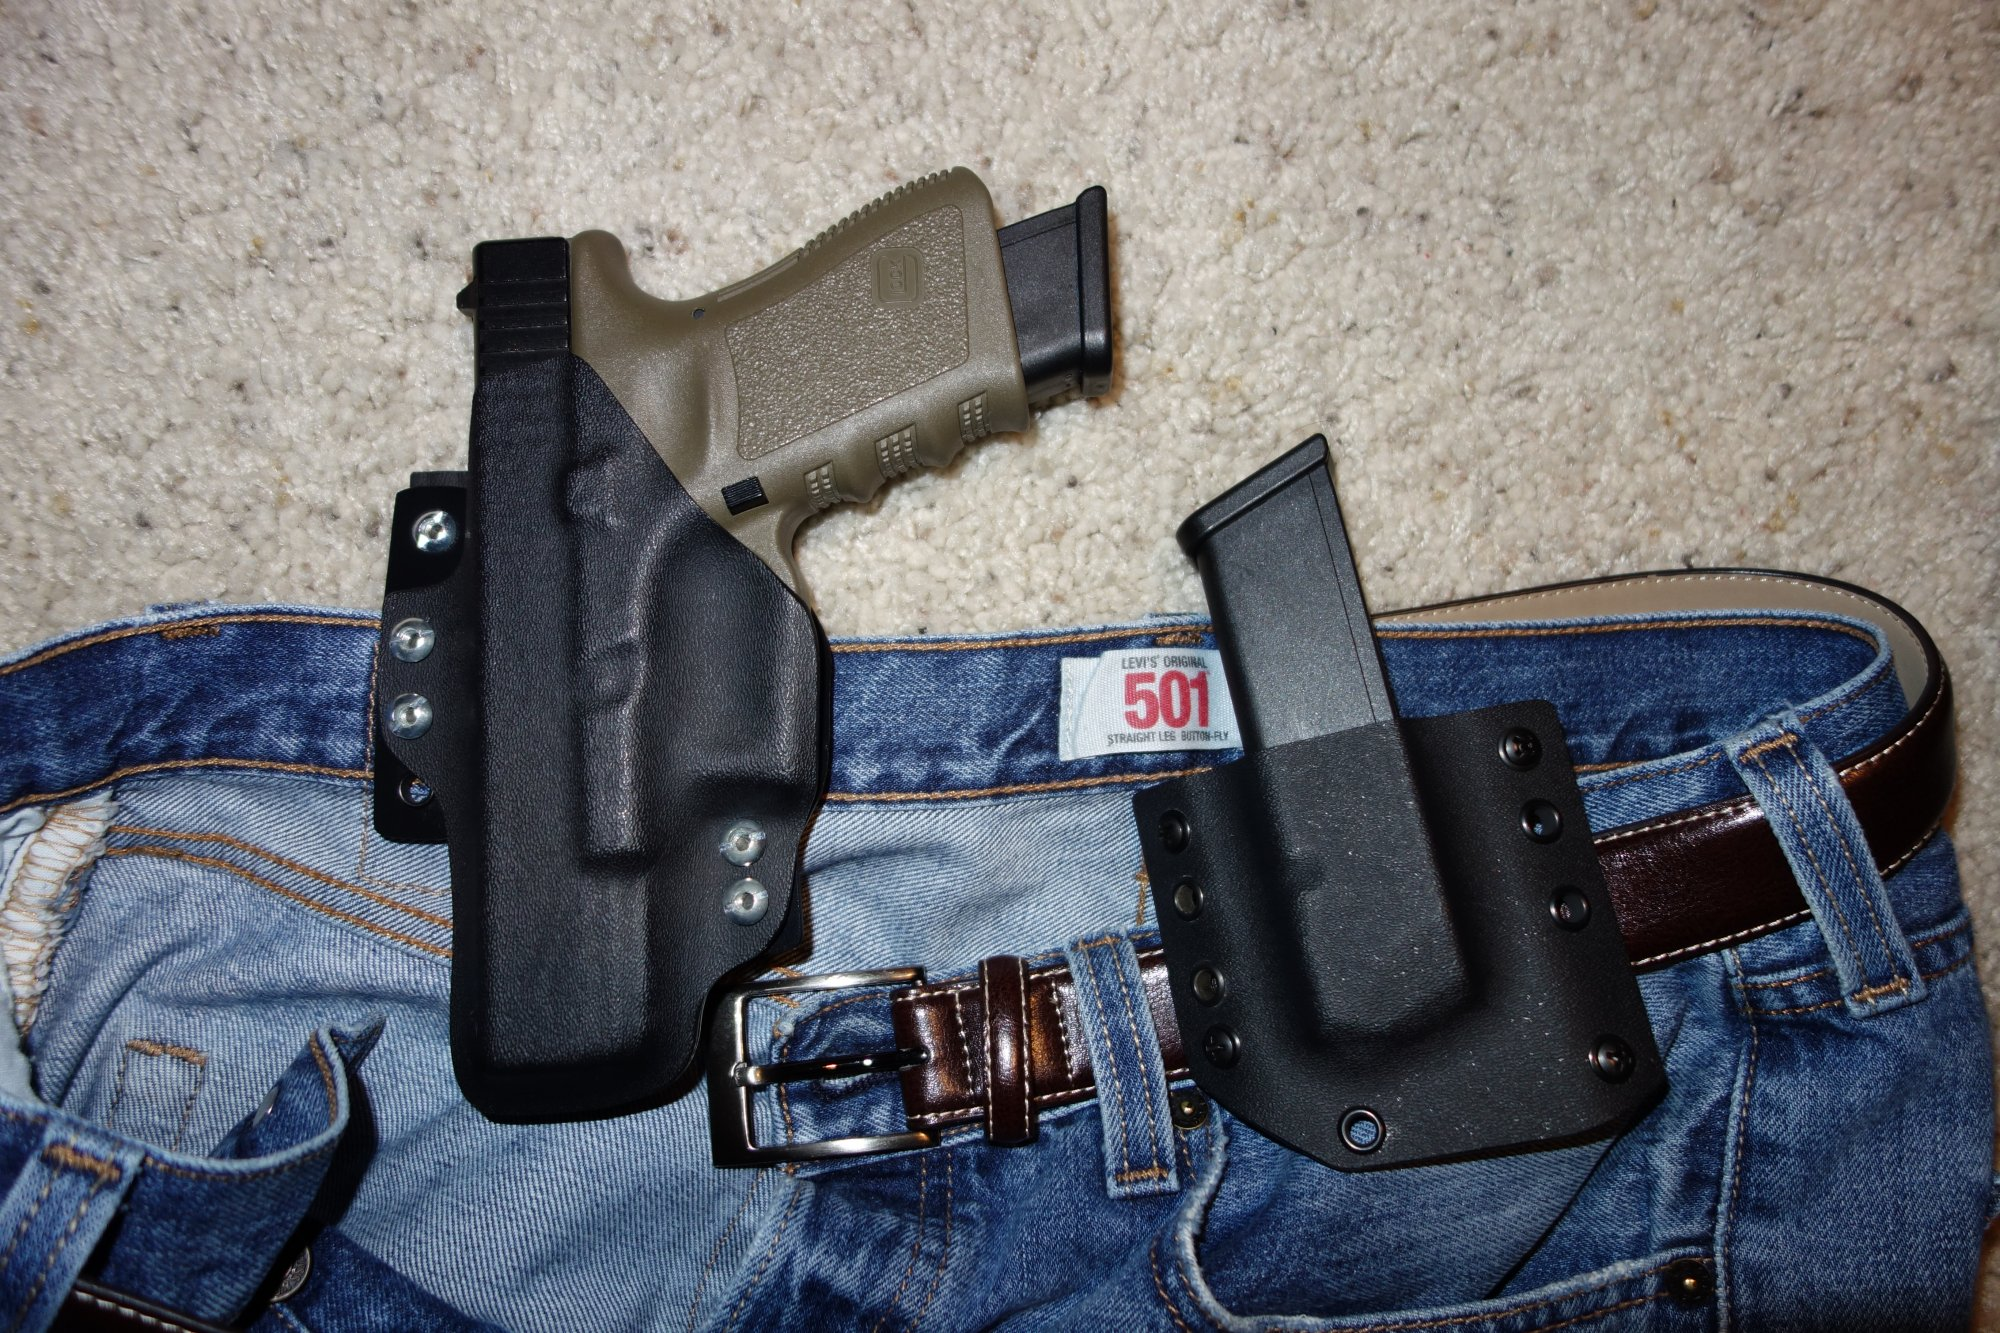 Bravo Concealment Holsters BCH DOS Holster Drop Out of Sight Holster Inside the Waistband Holster for Glock 19 G19 Tactical Pistol Concealment Holster David Crane DefenseReview.com DR 9 Bravo Concealment (BC) D.O.S. (Drop Out of Sight) Holster: Covert Tactical Kydex IWB Concealed Carry (CCW) Holster for Glock 19 Compact 9mm Pistol, and Pistol Mag Carrier/Pouch